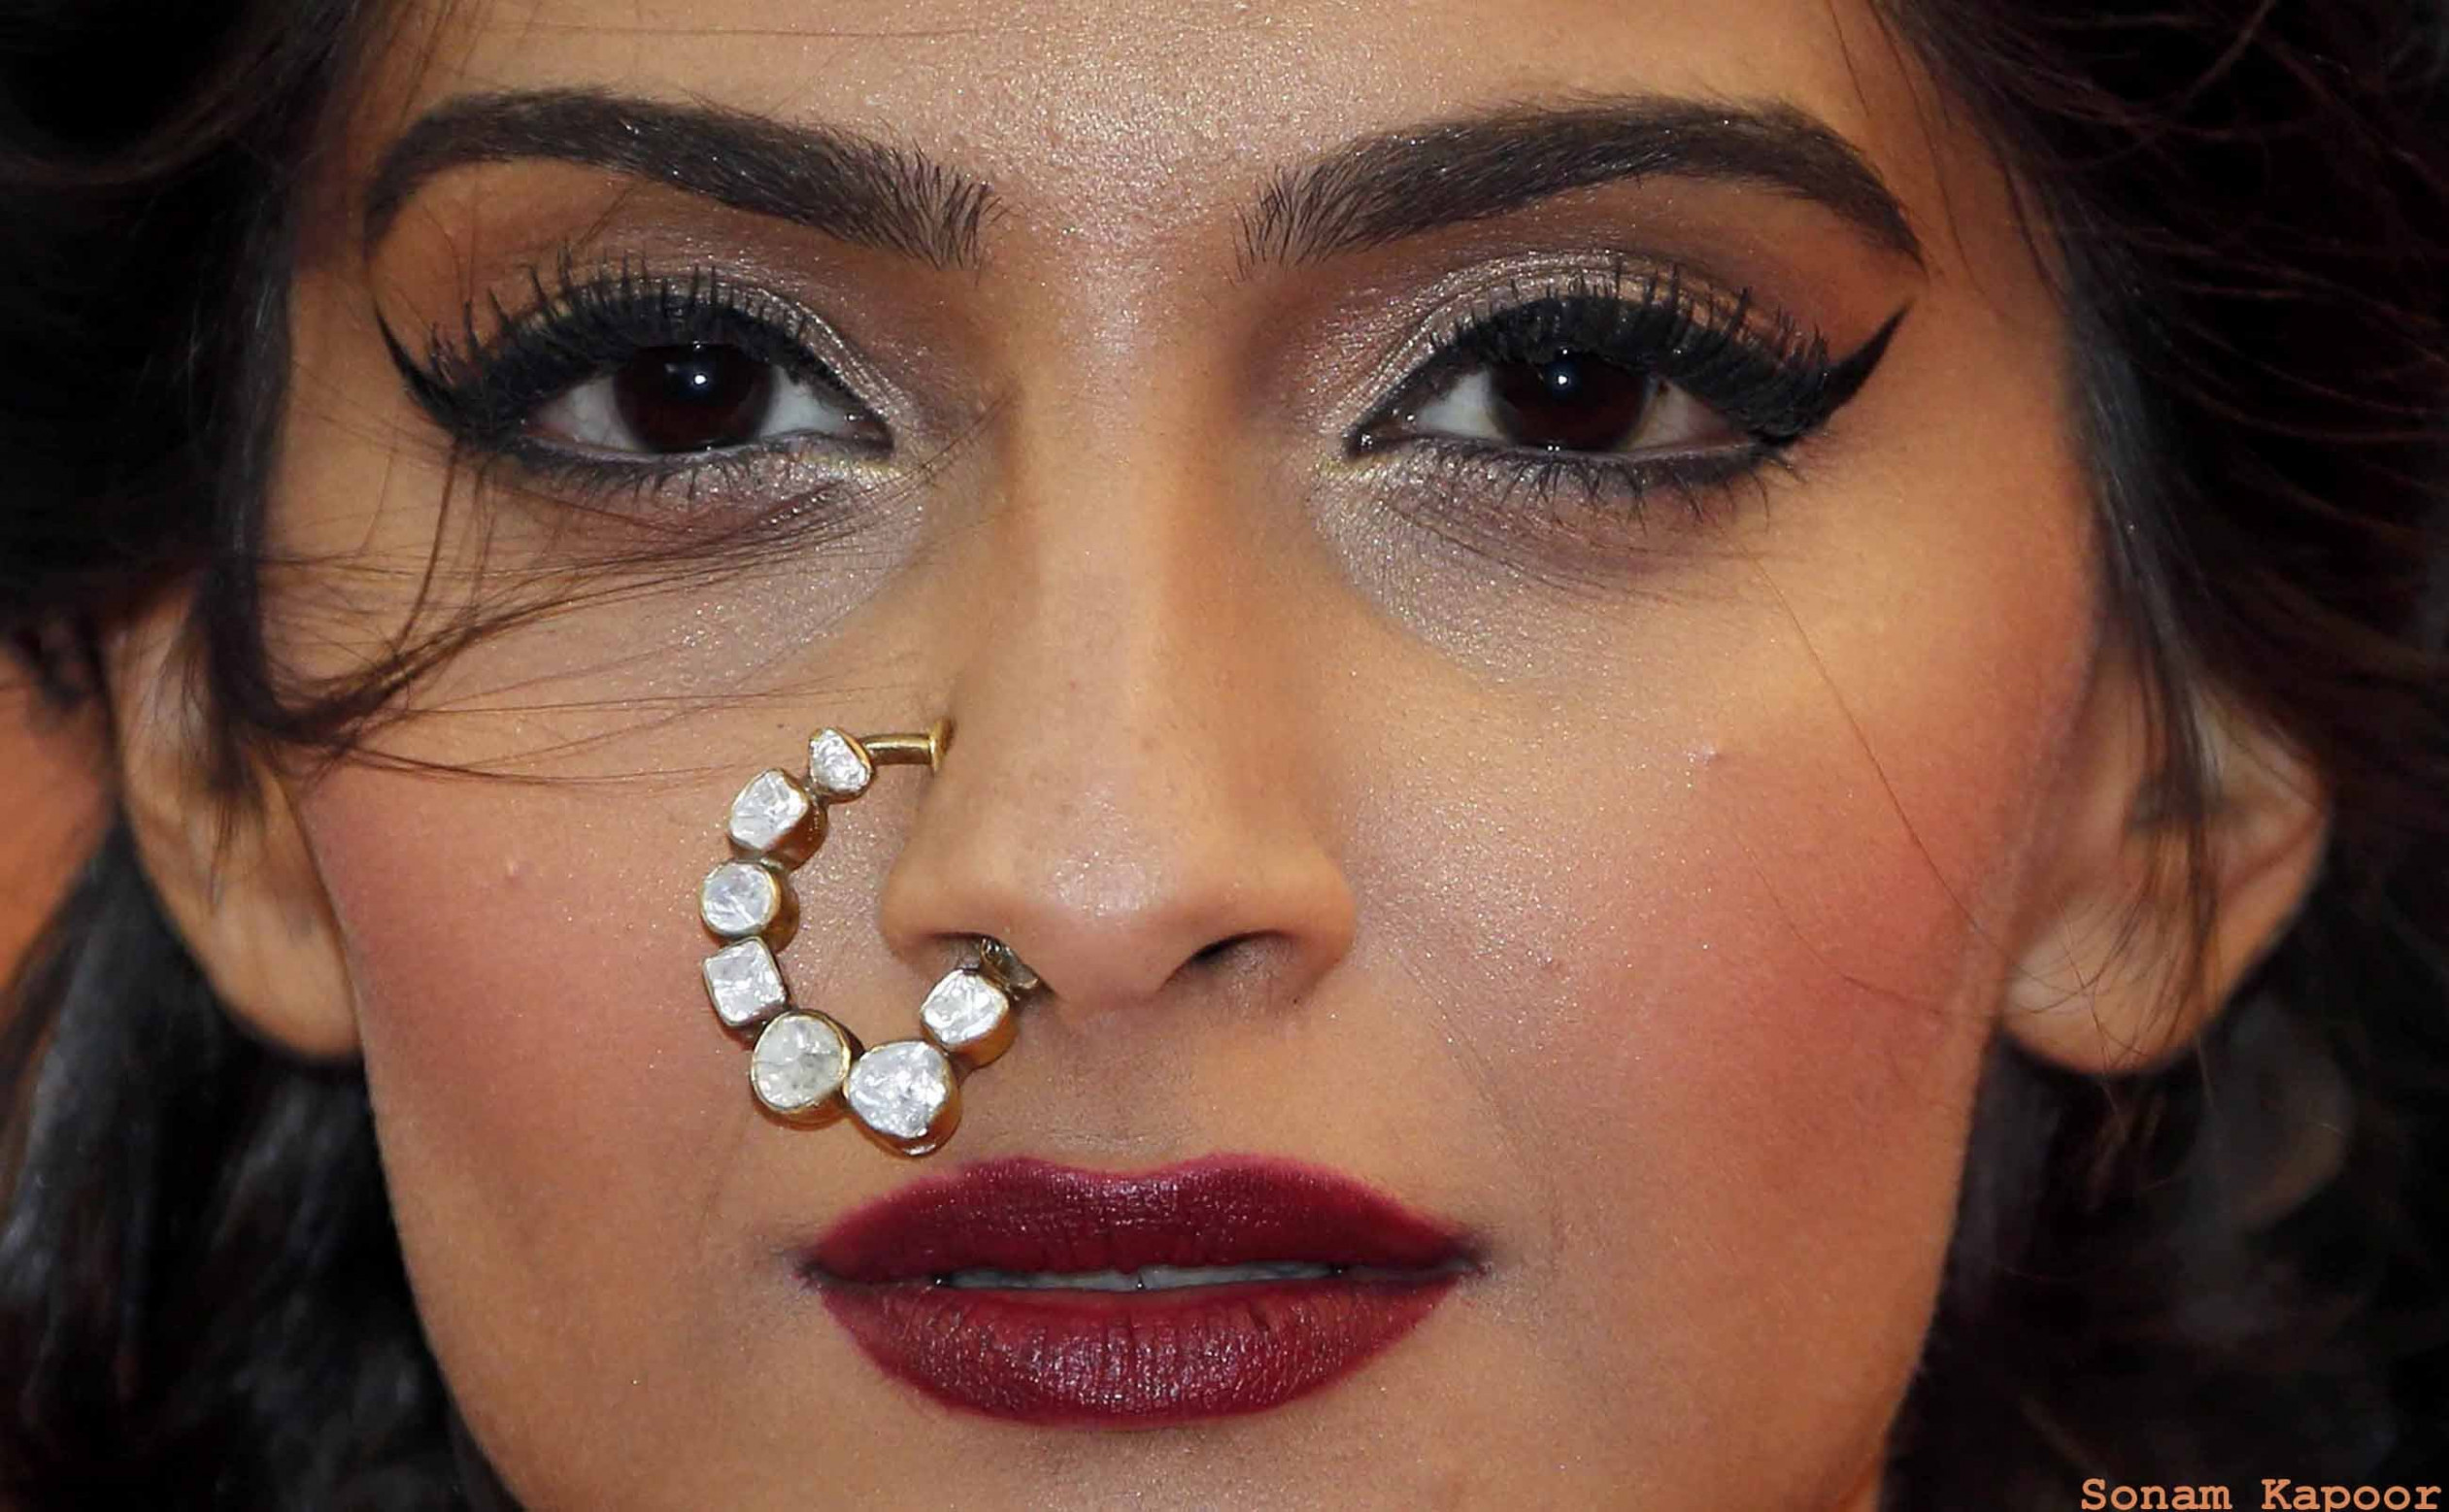 Sonam Kapoor full makeup face in party image | Latest HD ...